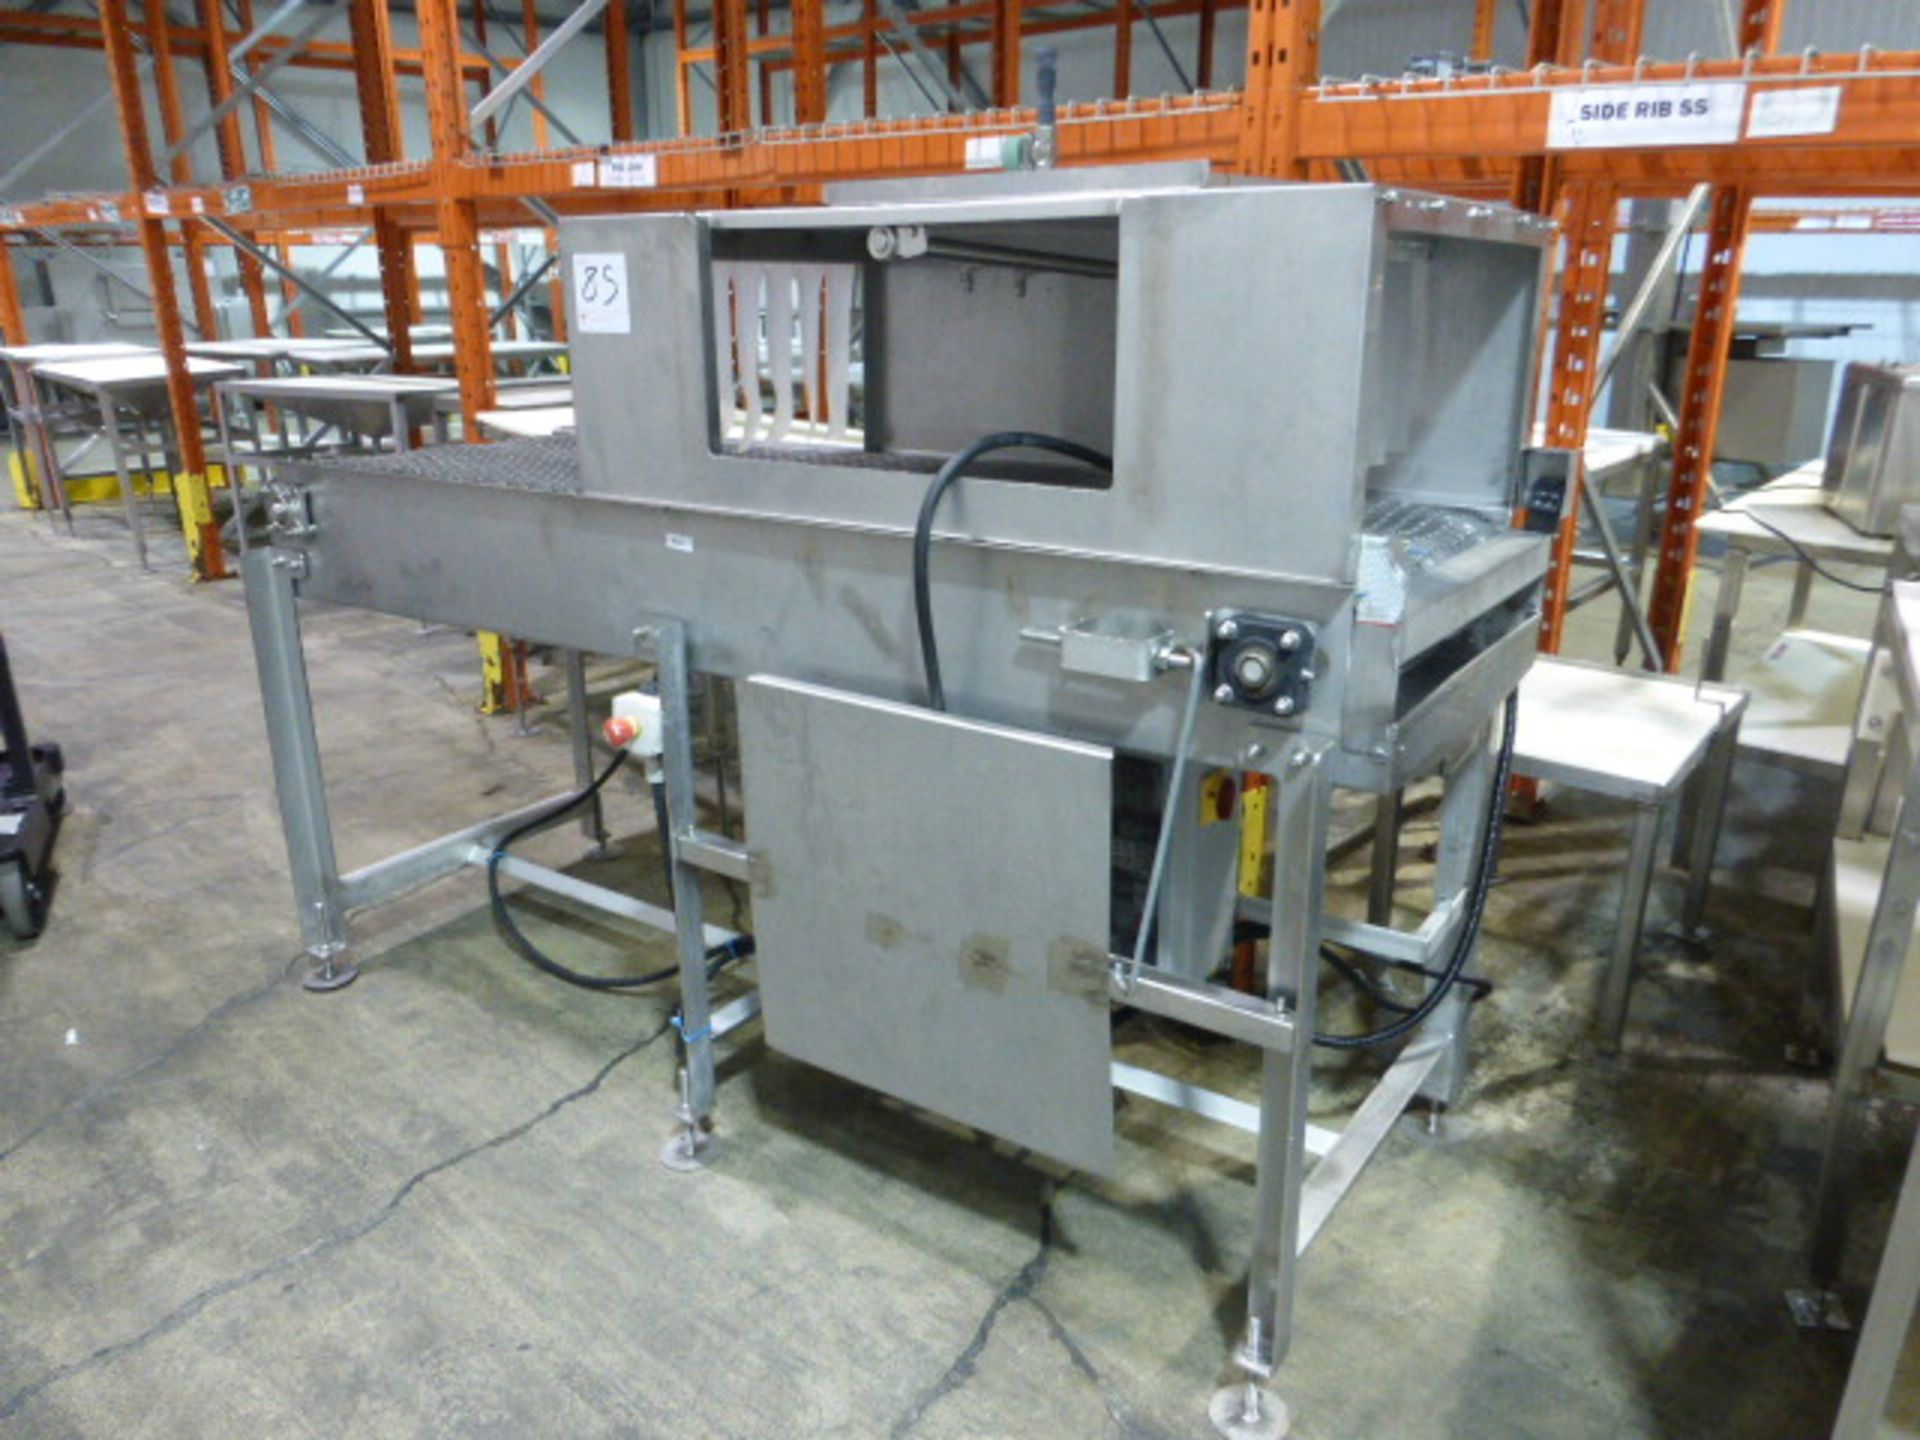 Lot 85 - s/s Tunnel washer, w/ s/s belt 2 ft. x 79 in.